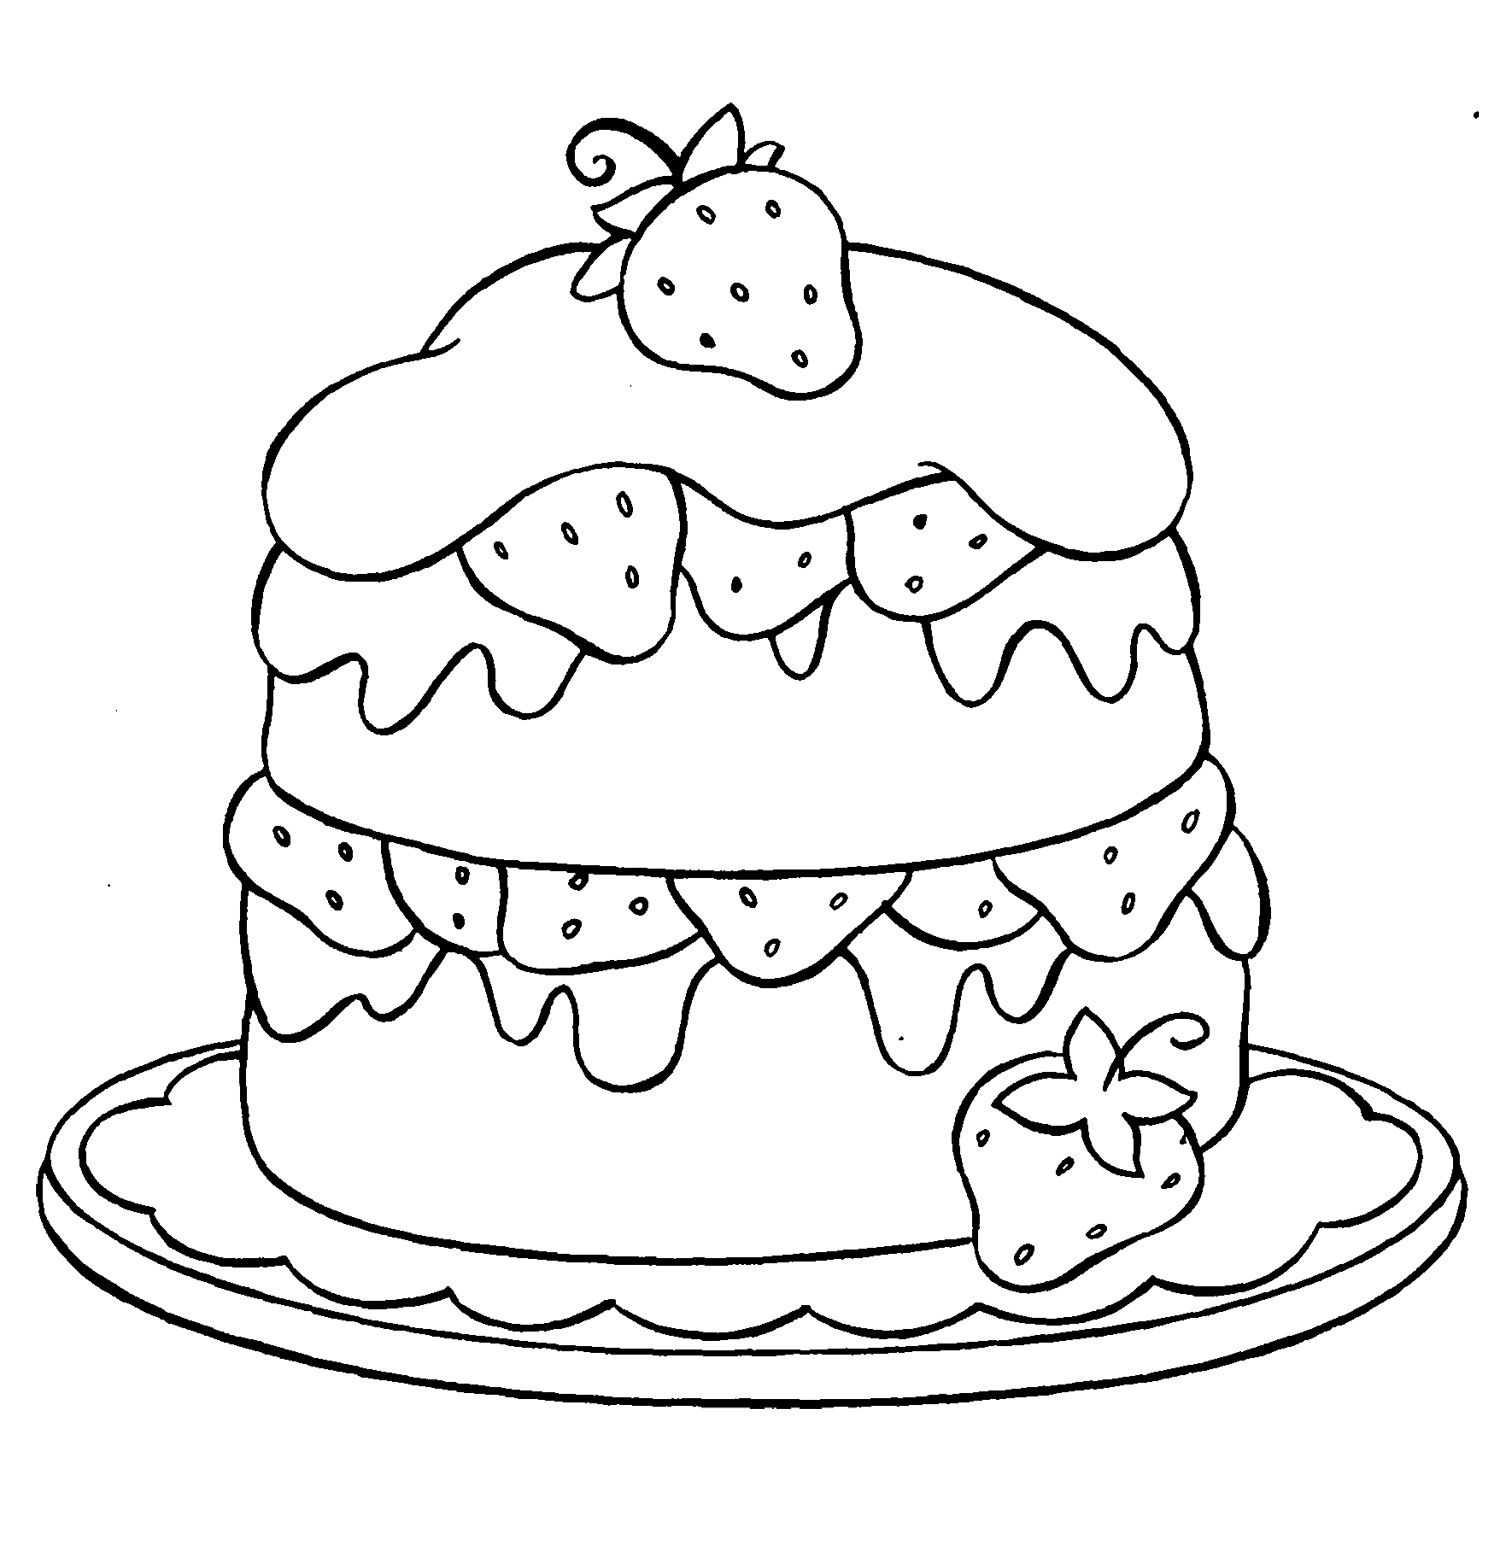 cake printables for coloring strawberry coloring pages best coloring pages for kids printables cake for coloring